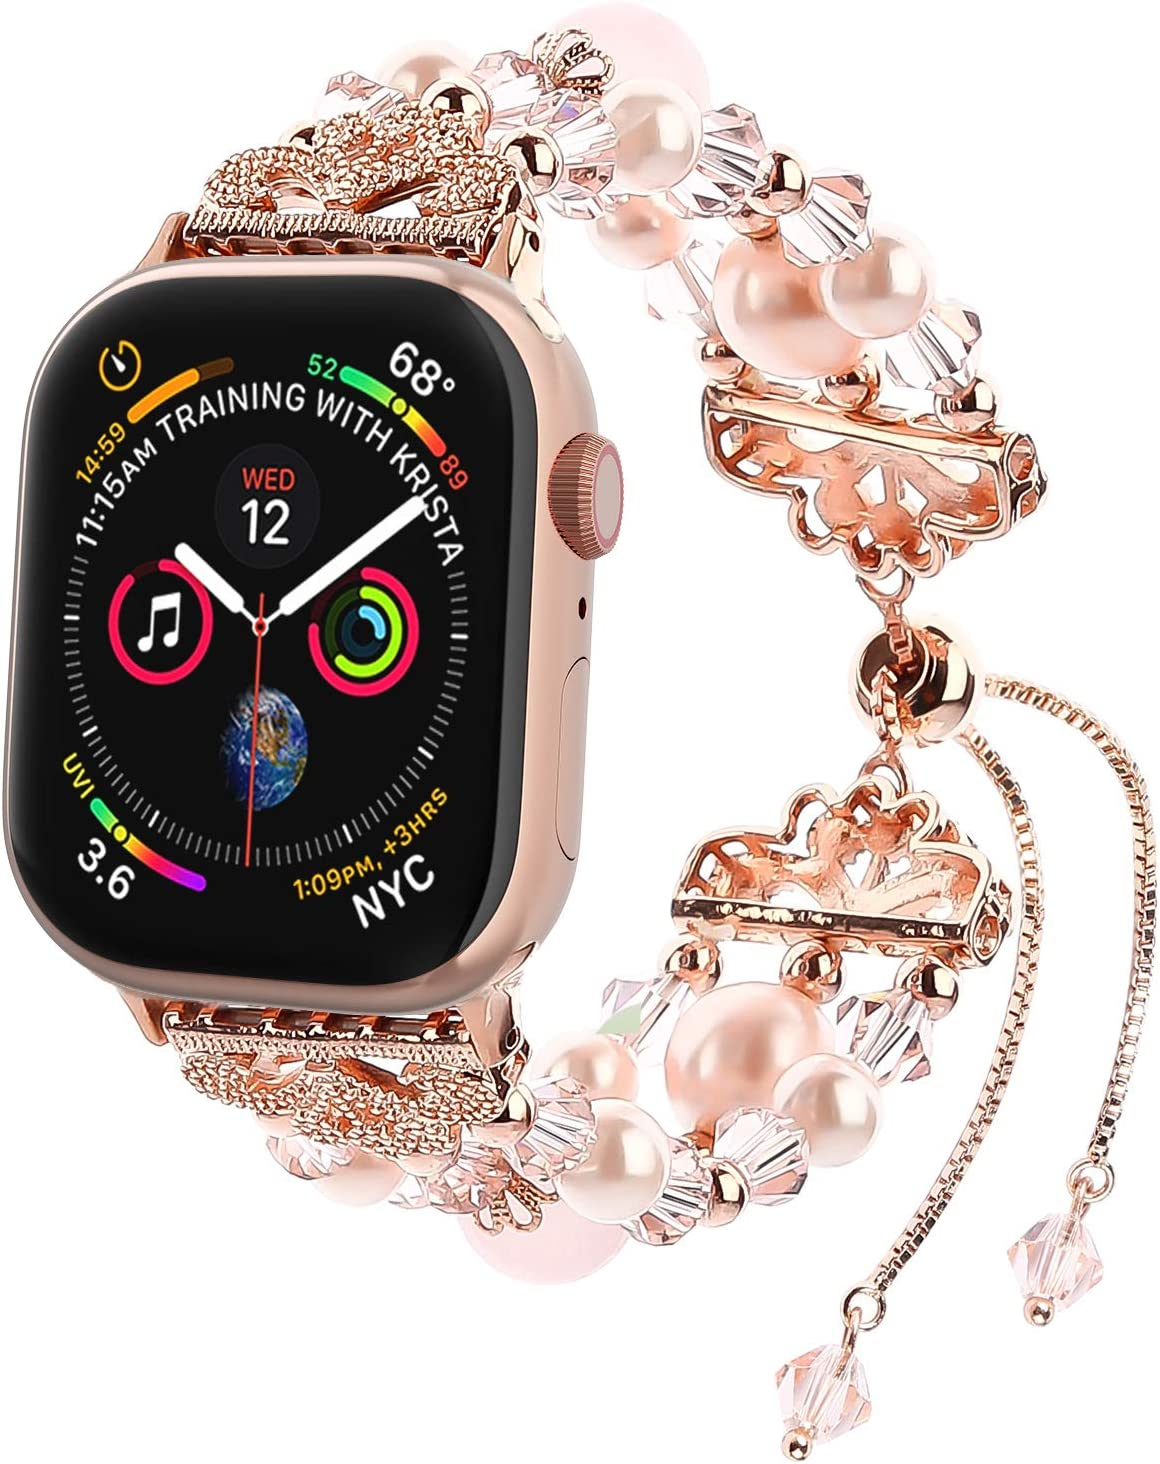 fohuas Compatible for Apple Watch Band 38mm 40mm, Adjustable iWatch beaded Bracelet Crystal Pearl Women Girl Elastic Jewelry Replacement Wristband Strap for iWatch Series SE 6 5 4 3 2 1, Rose Gold